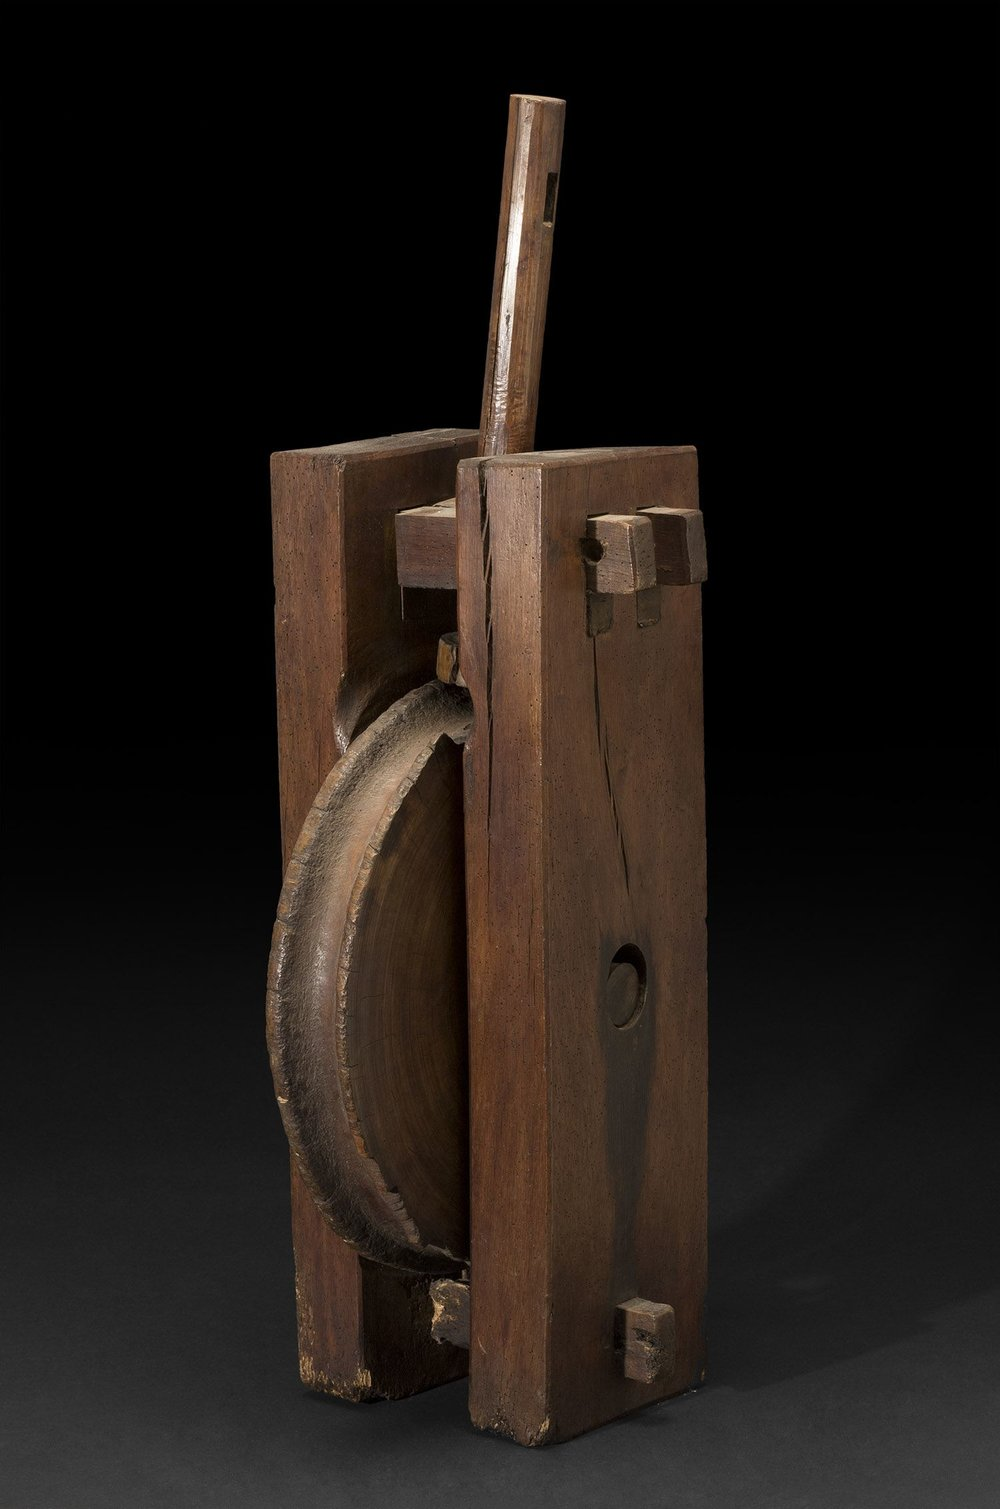 Japan    Well Wheel  , Early 20th Century Wood 33 x 14 x 10.5 inches 83.8 x 35.6 x 26.7 cm JA 648